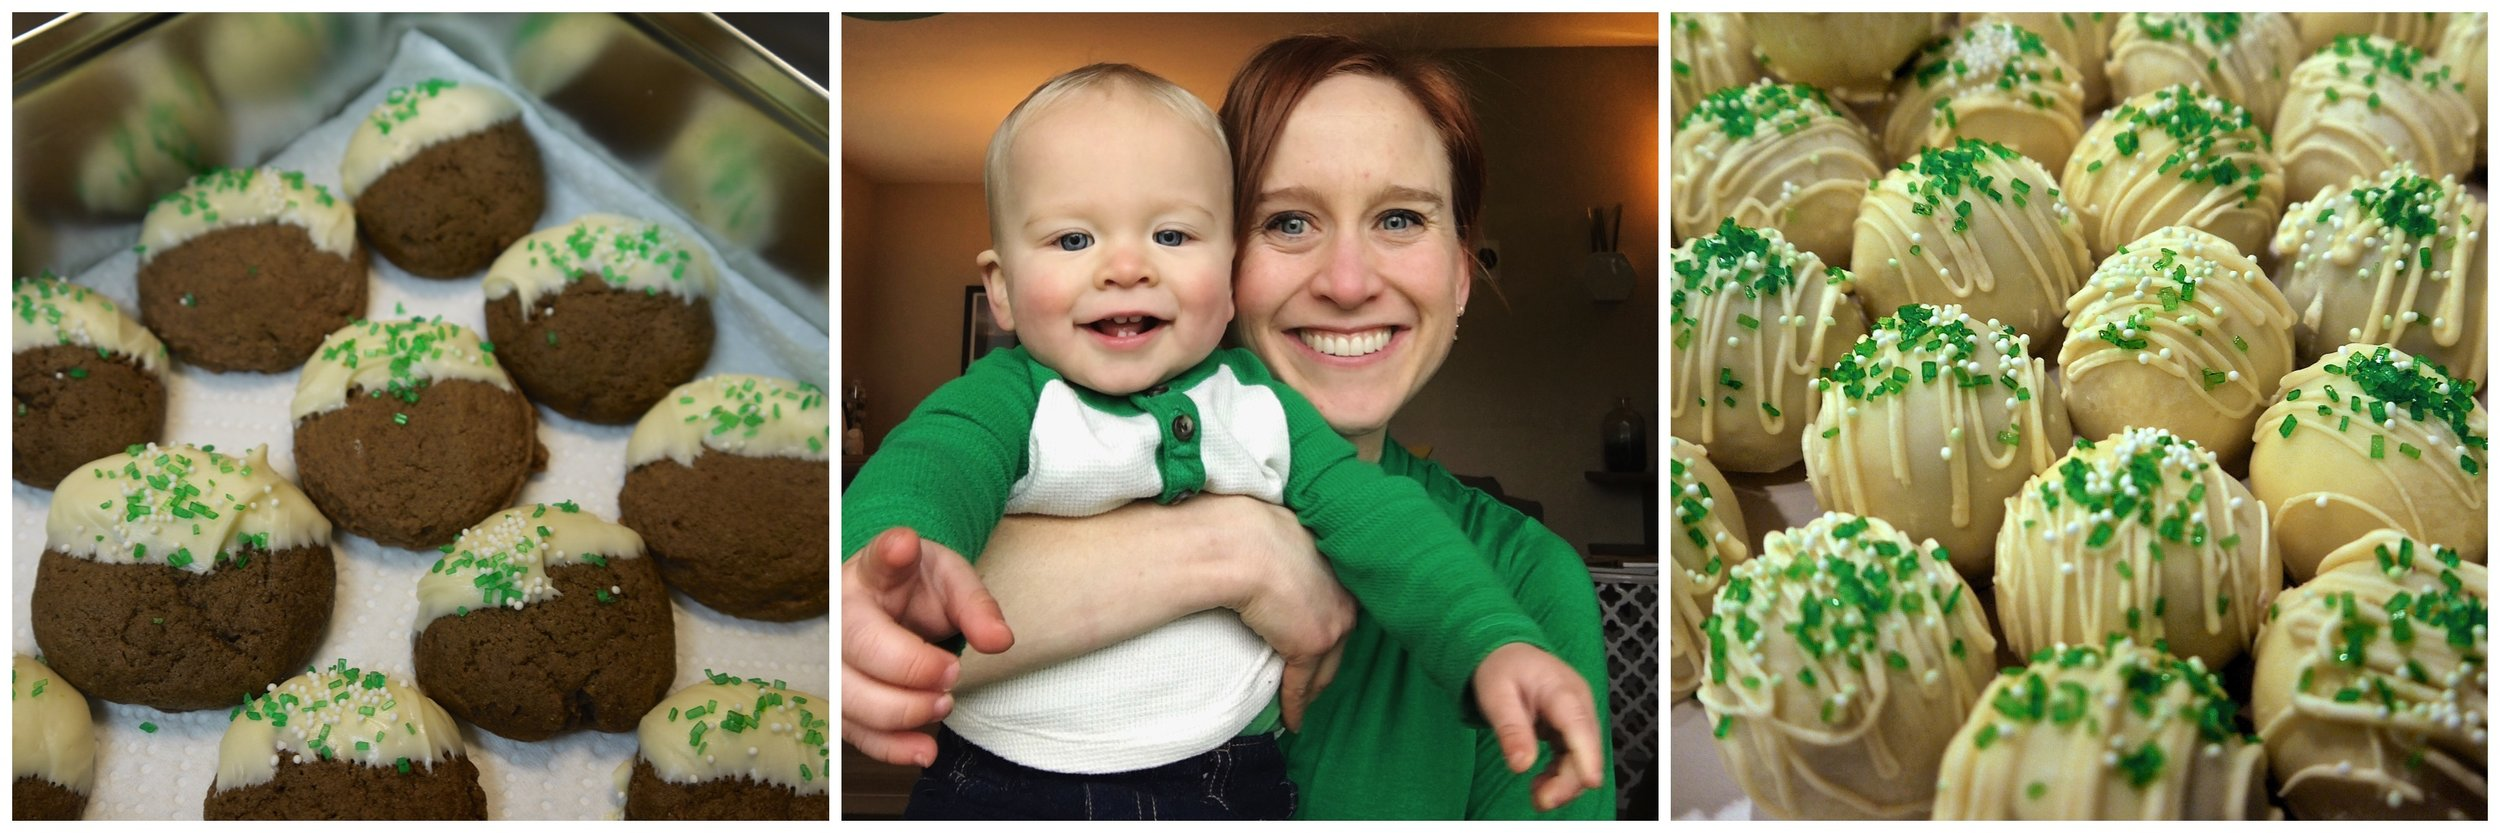 Saint Patrick's Day Goodies & Selfies of the past